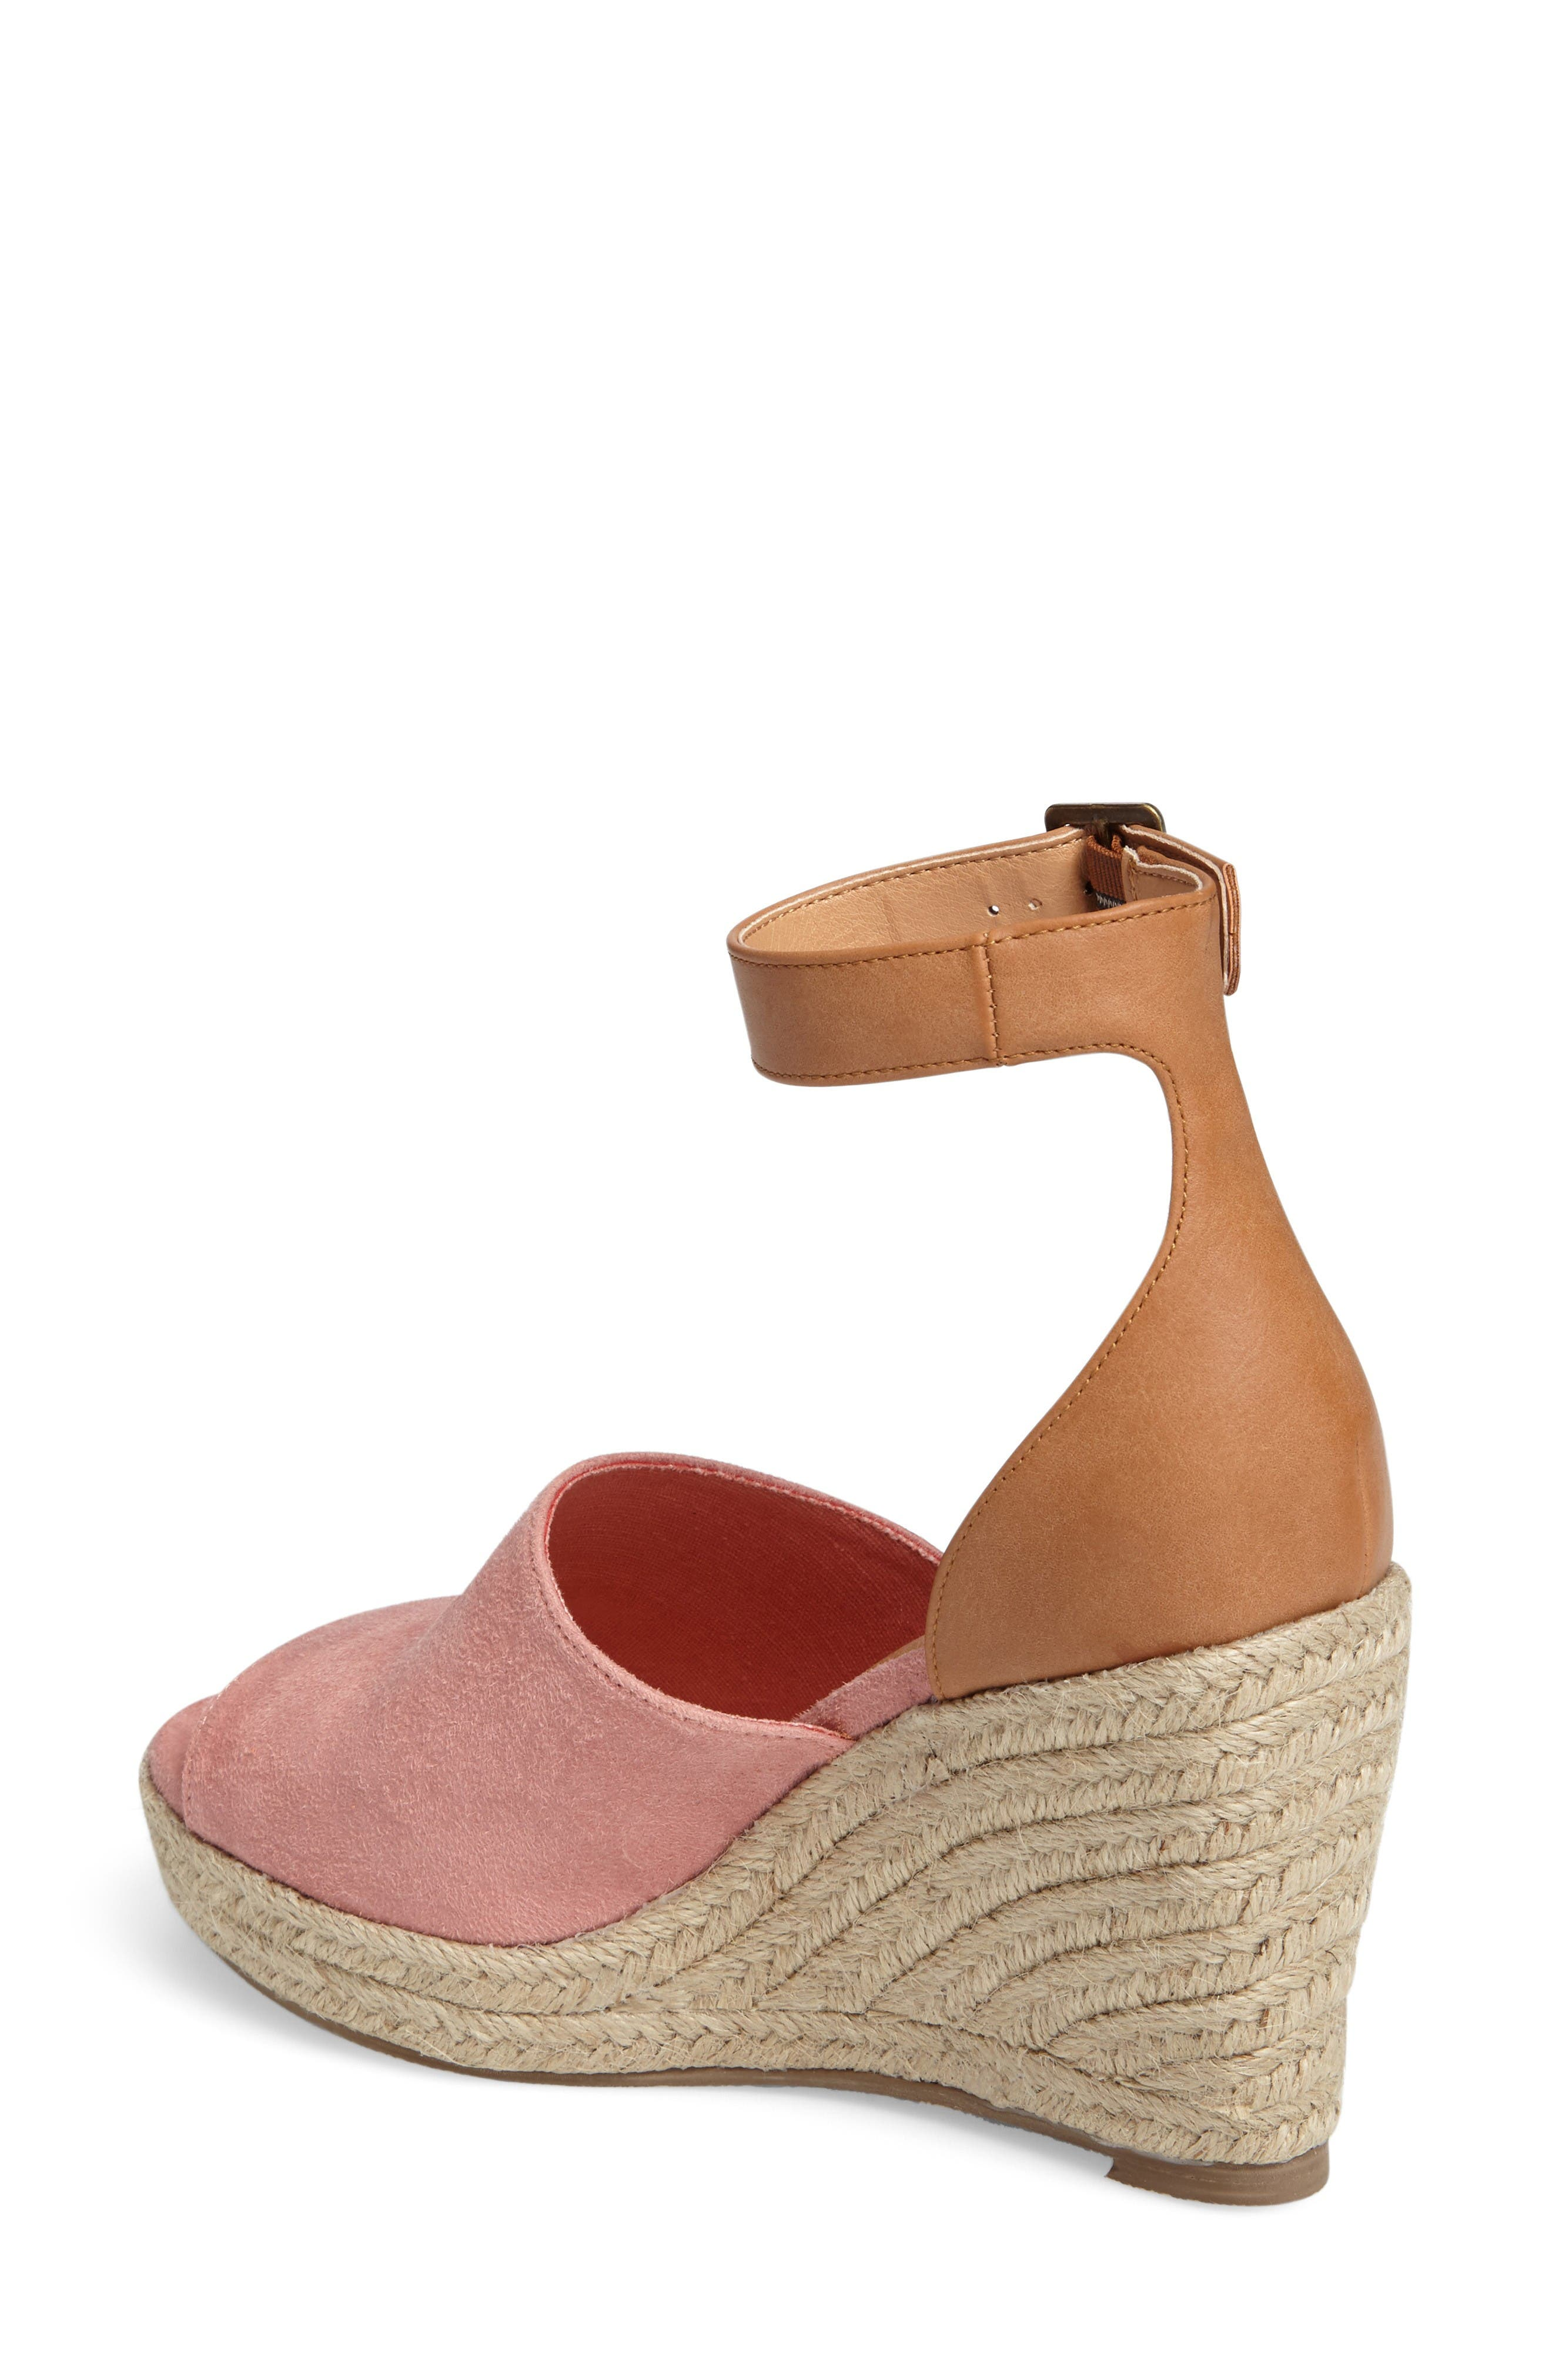 Alternate Image 2  - Matisse Flamingo Wedge Sandal (Women)